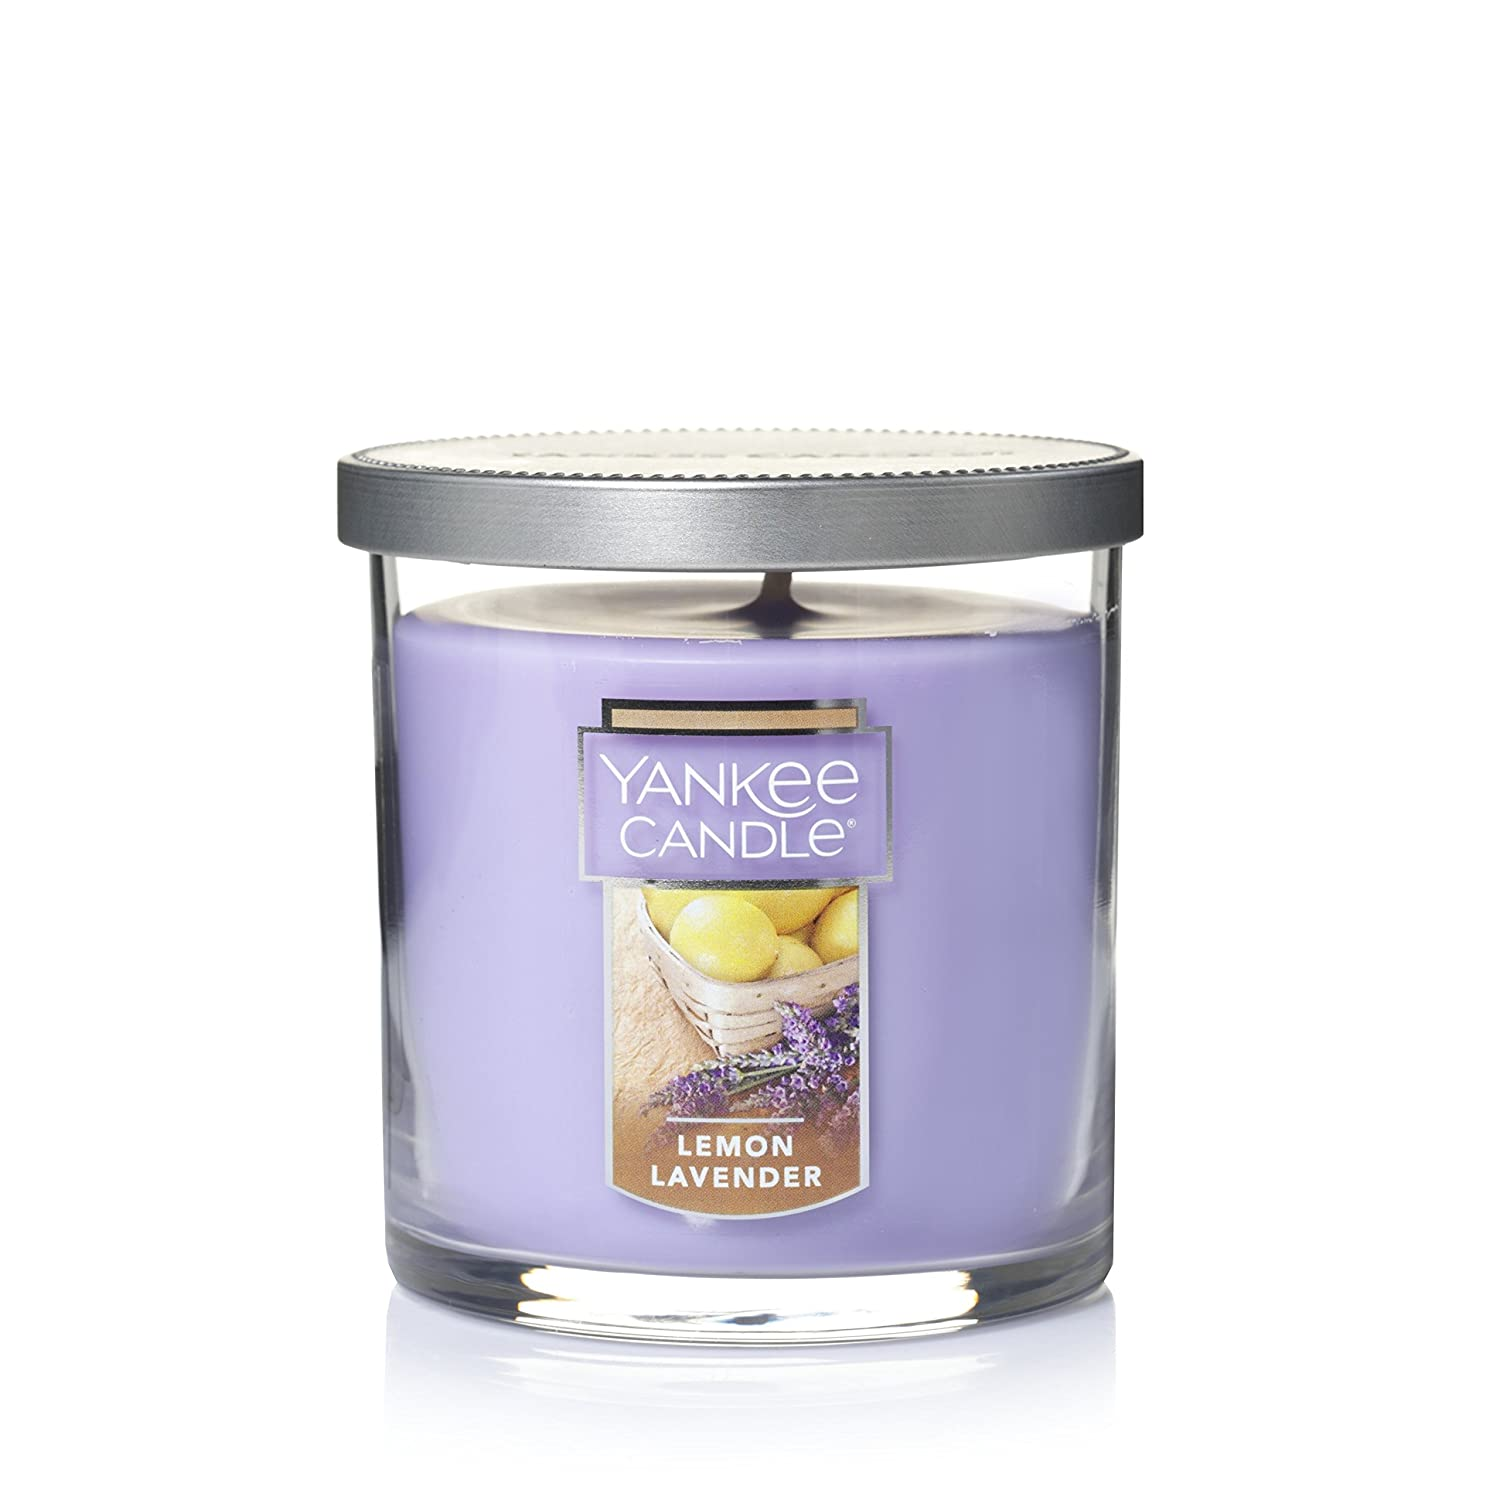 Yankee Candle Lemon Lavender Small Single Wick Tumbler Candle, Fresh Scent Yankee Candle Company 1073481-P